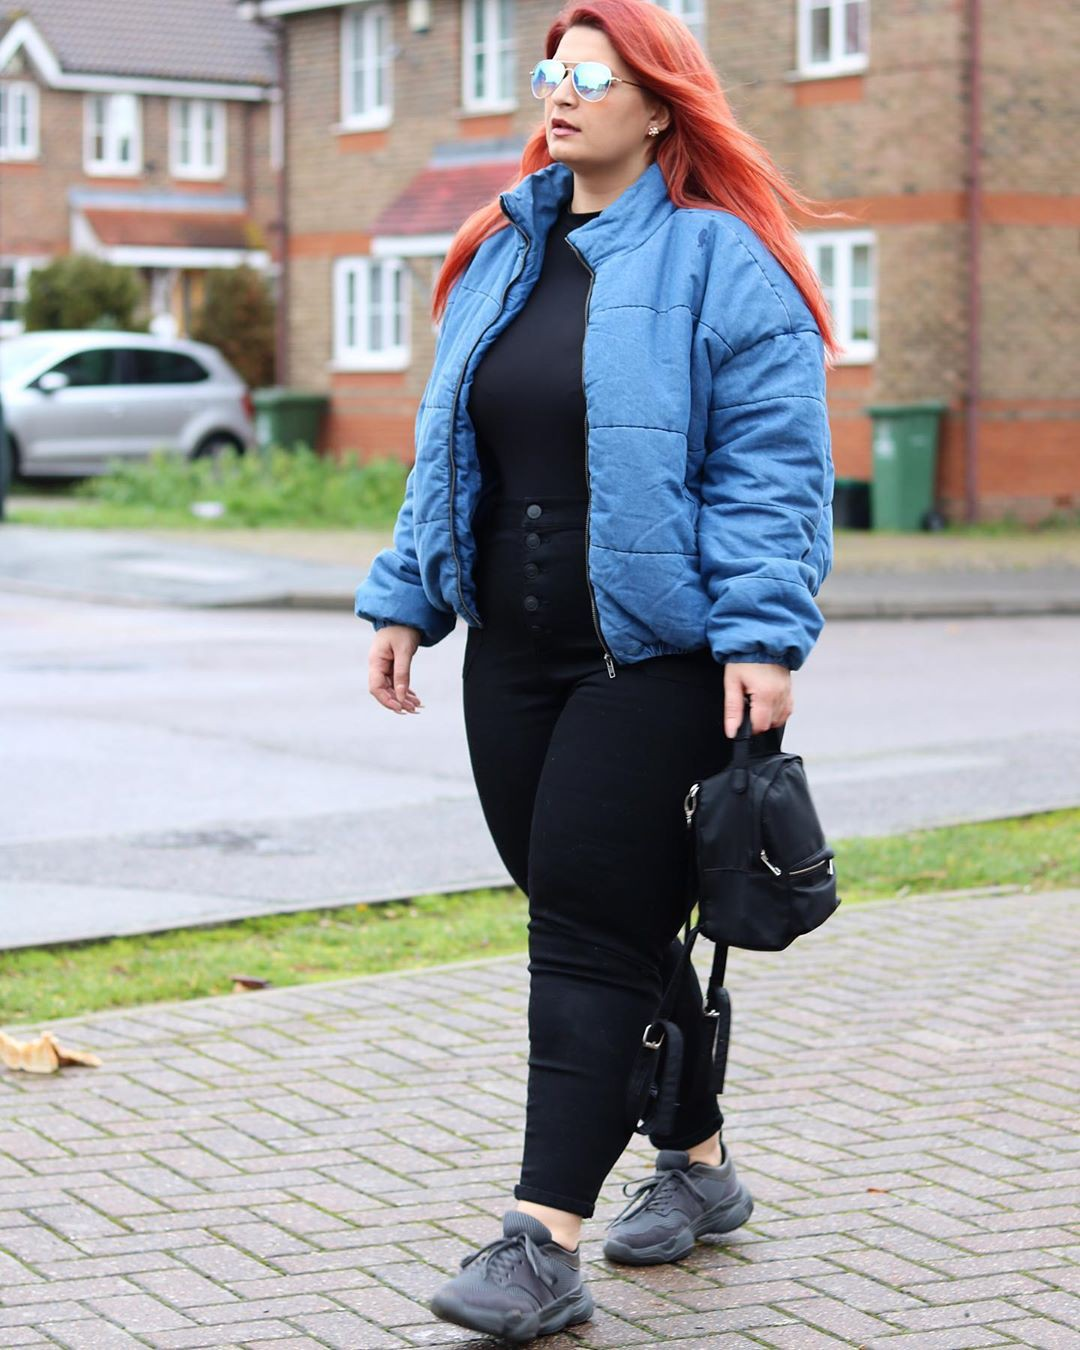 Cobalt blue and blue jacket, jeans, photography for girl